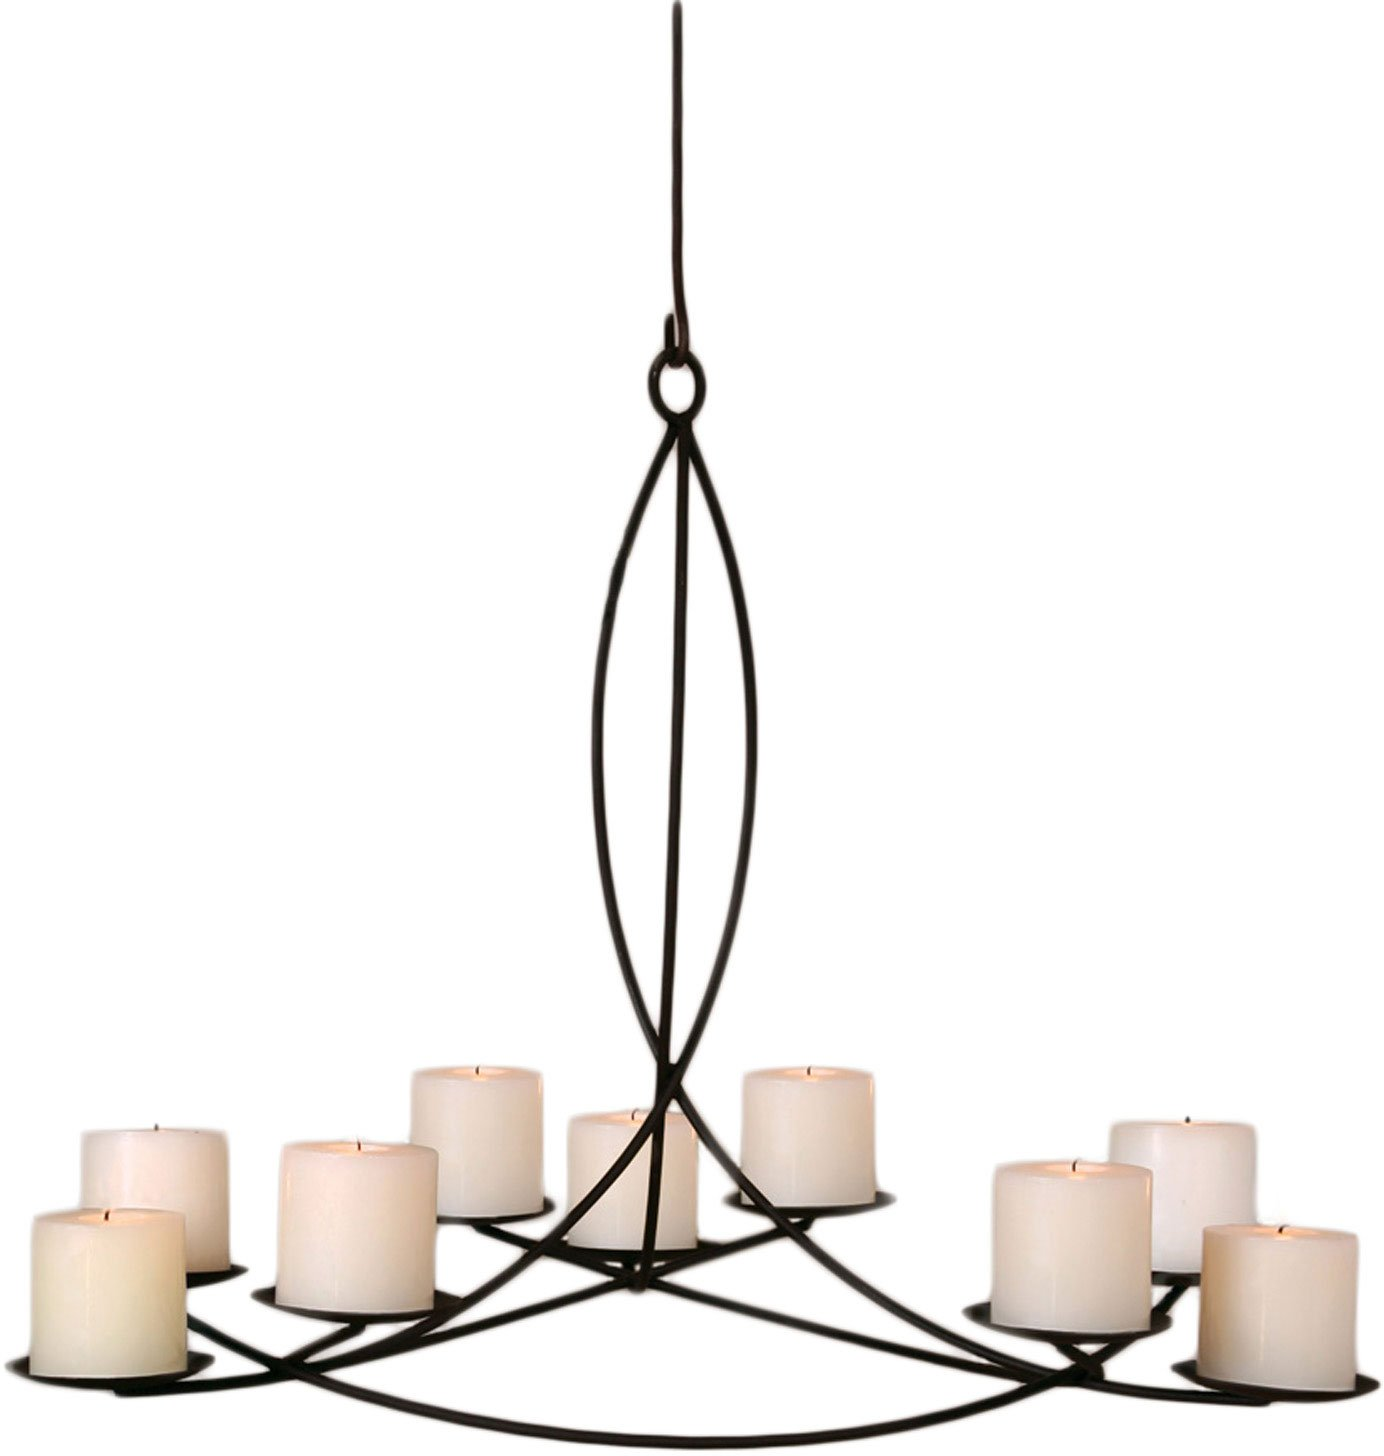 HomArt Odeon Wrought Iron Pillar Candle Chandelier by HomArt